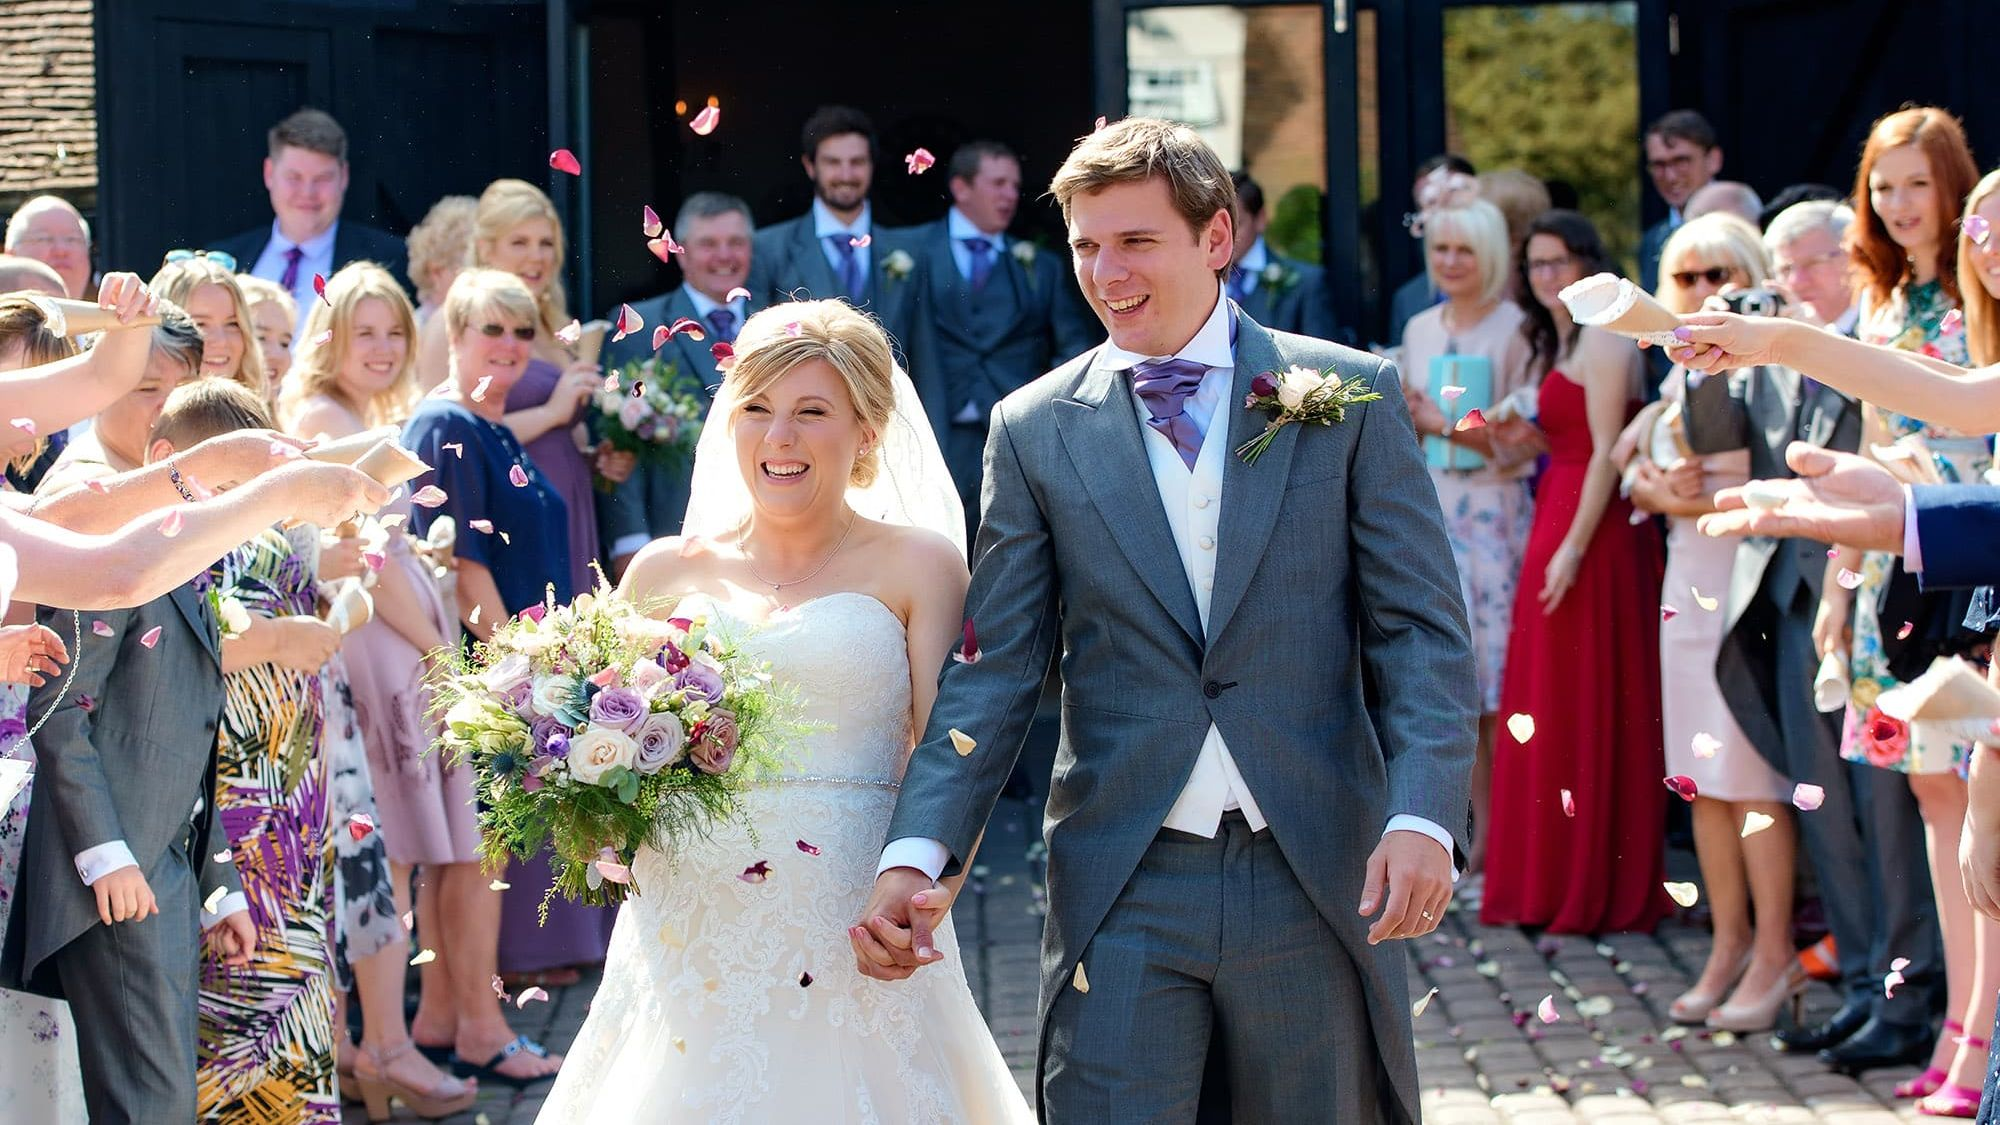 Wedding photographer oxfordshire and berkshire